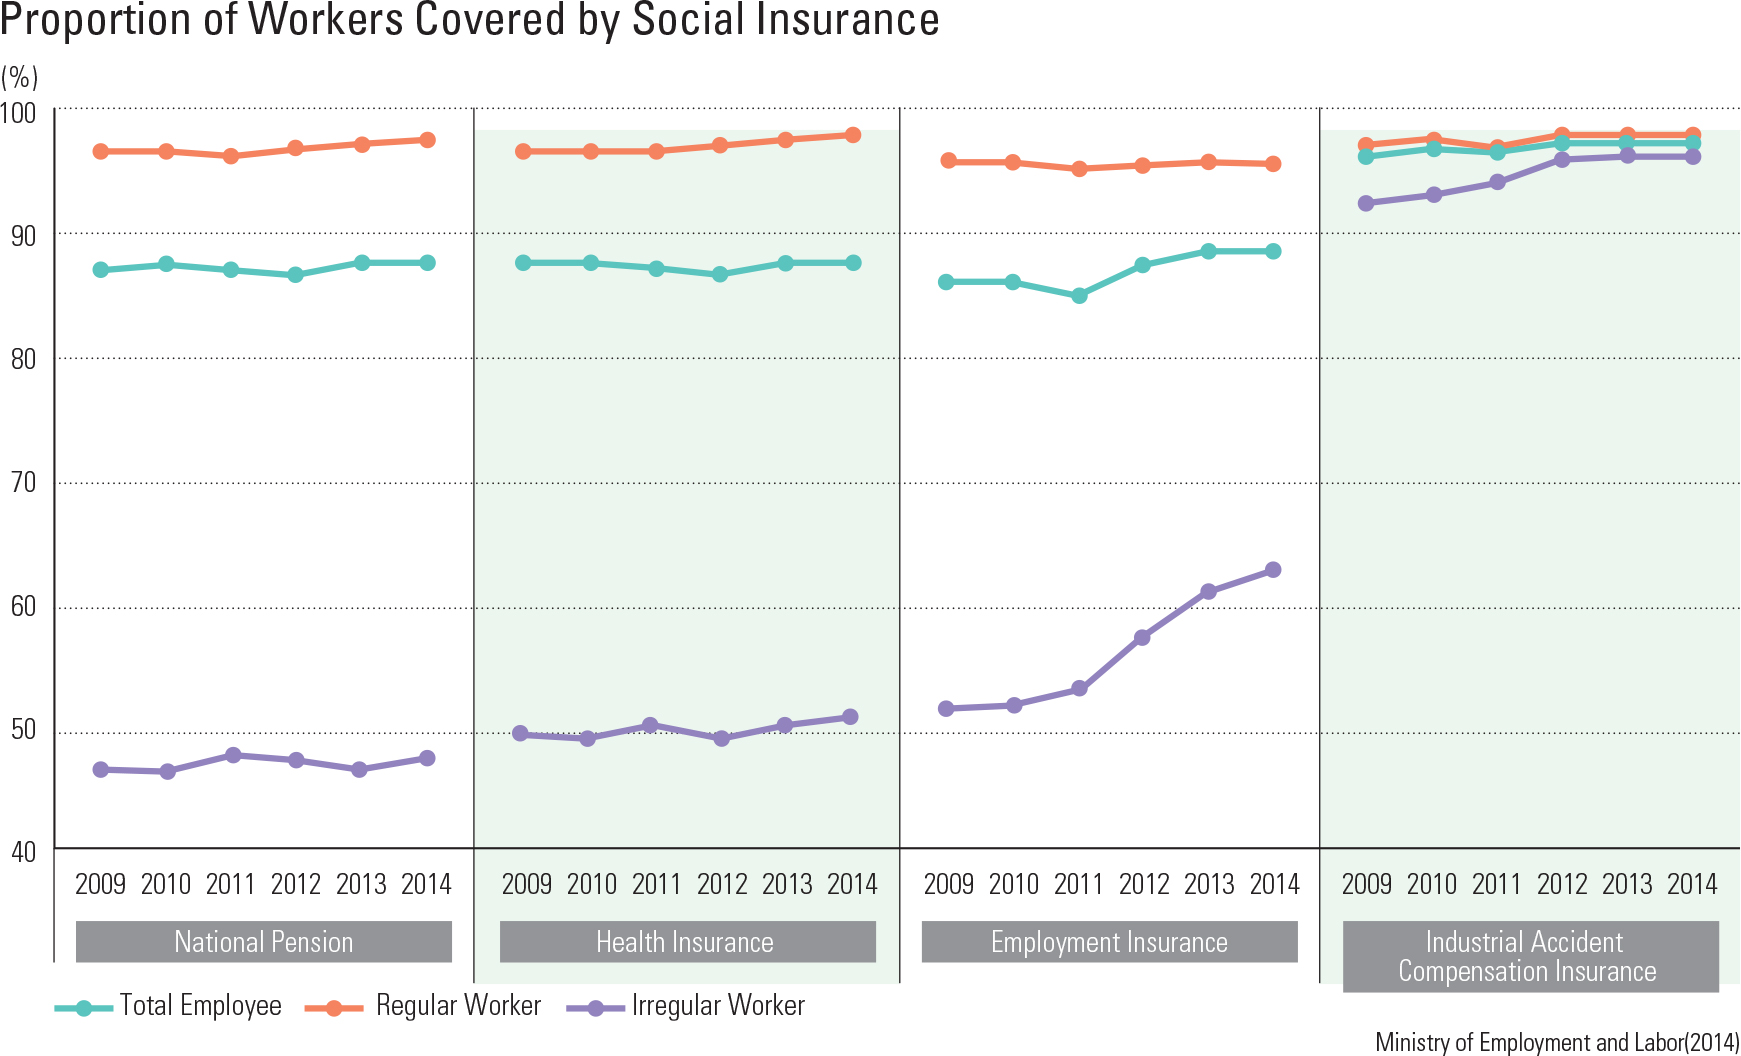 "Proportion of Workers Covered by Social Insurance<p class=""oz_zoom"" zimg=""http://imagedata.cafe24.com/us_3/us3_239-2_2.jpg""><span style=""font-family:Nanum Myeongjo;""><span style=""font-size:18px;""><span class=""label label-danger"">UPDATE DATA</span></span></p>"